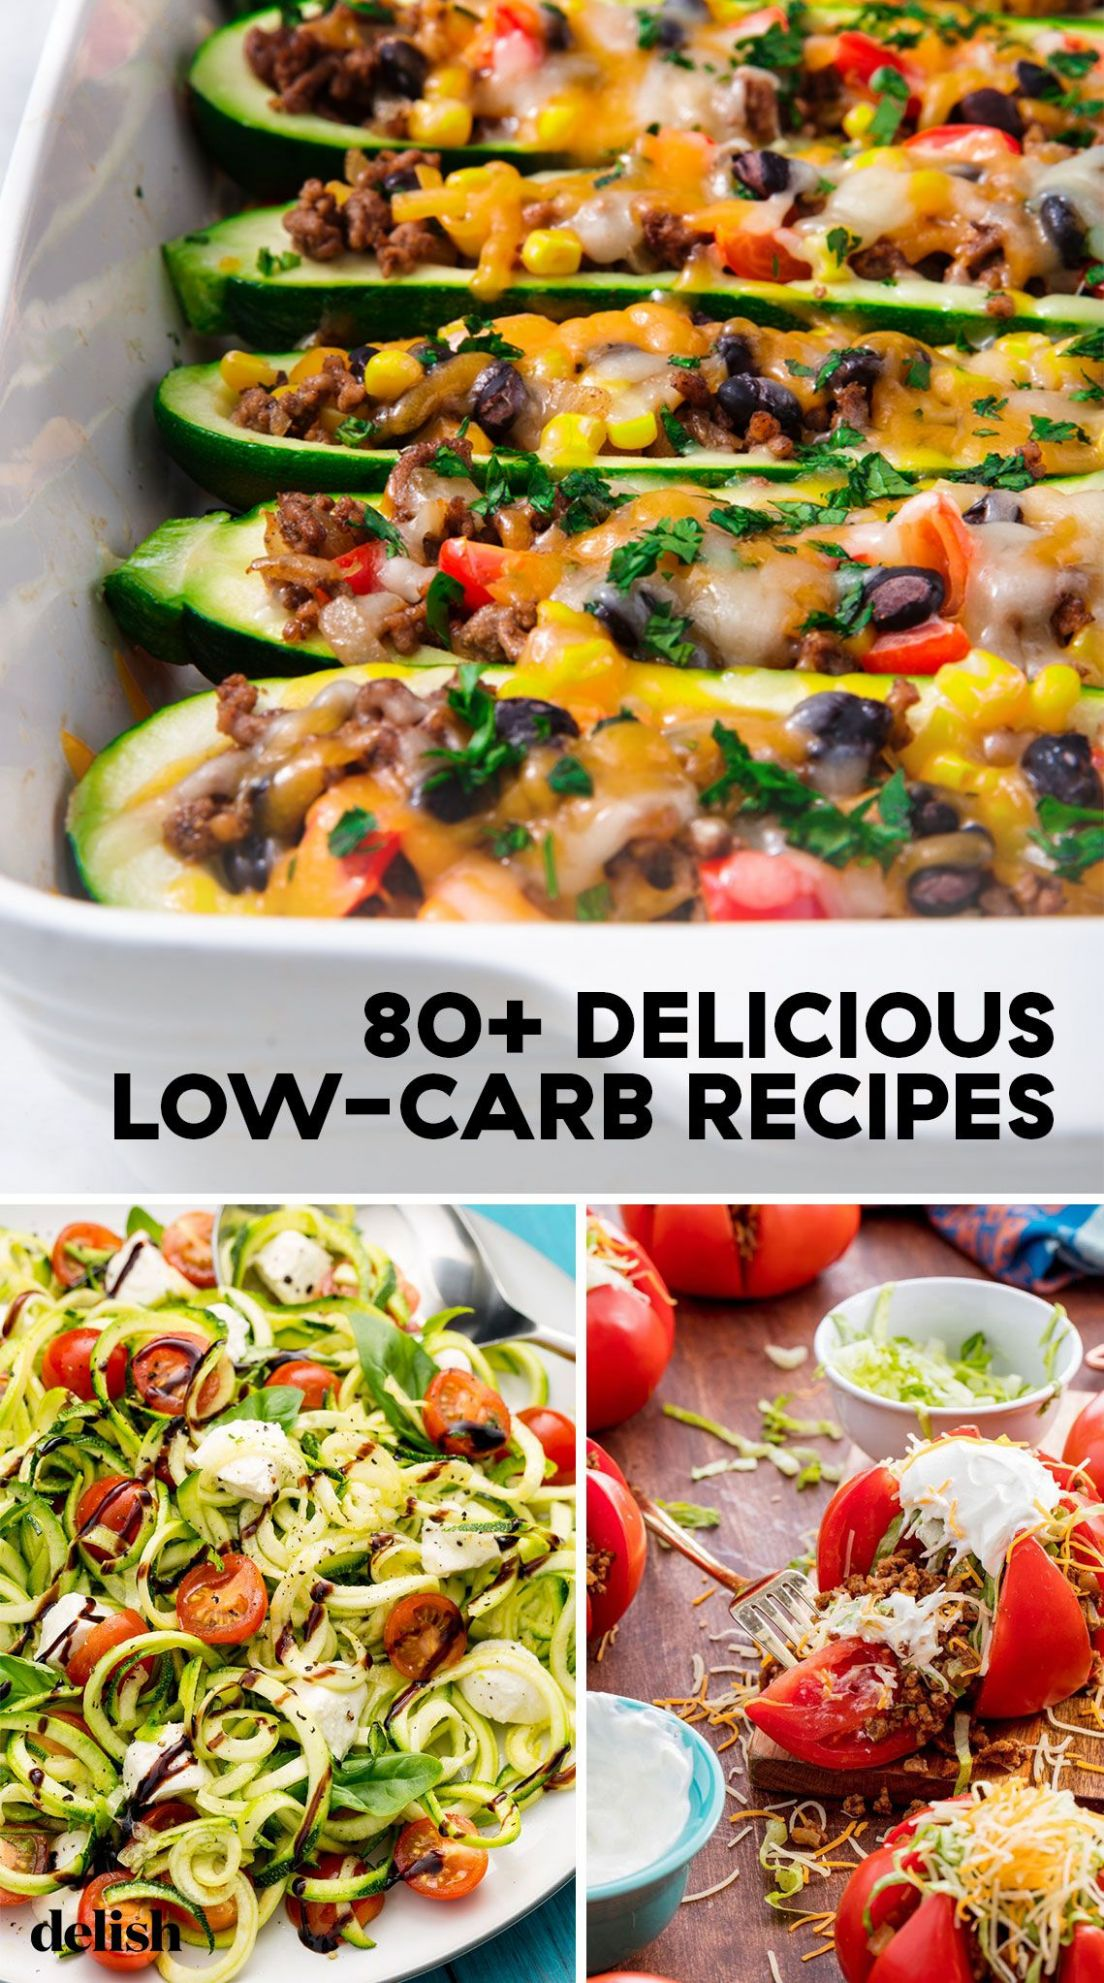 12+ Easy Low Carb Recipes - Best Low Carb Meal Ideas - Healthy Recipes No Carbs